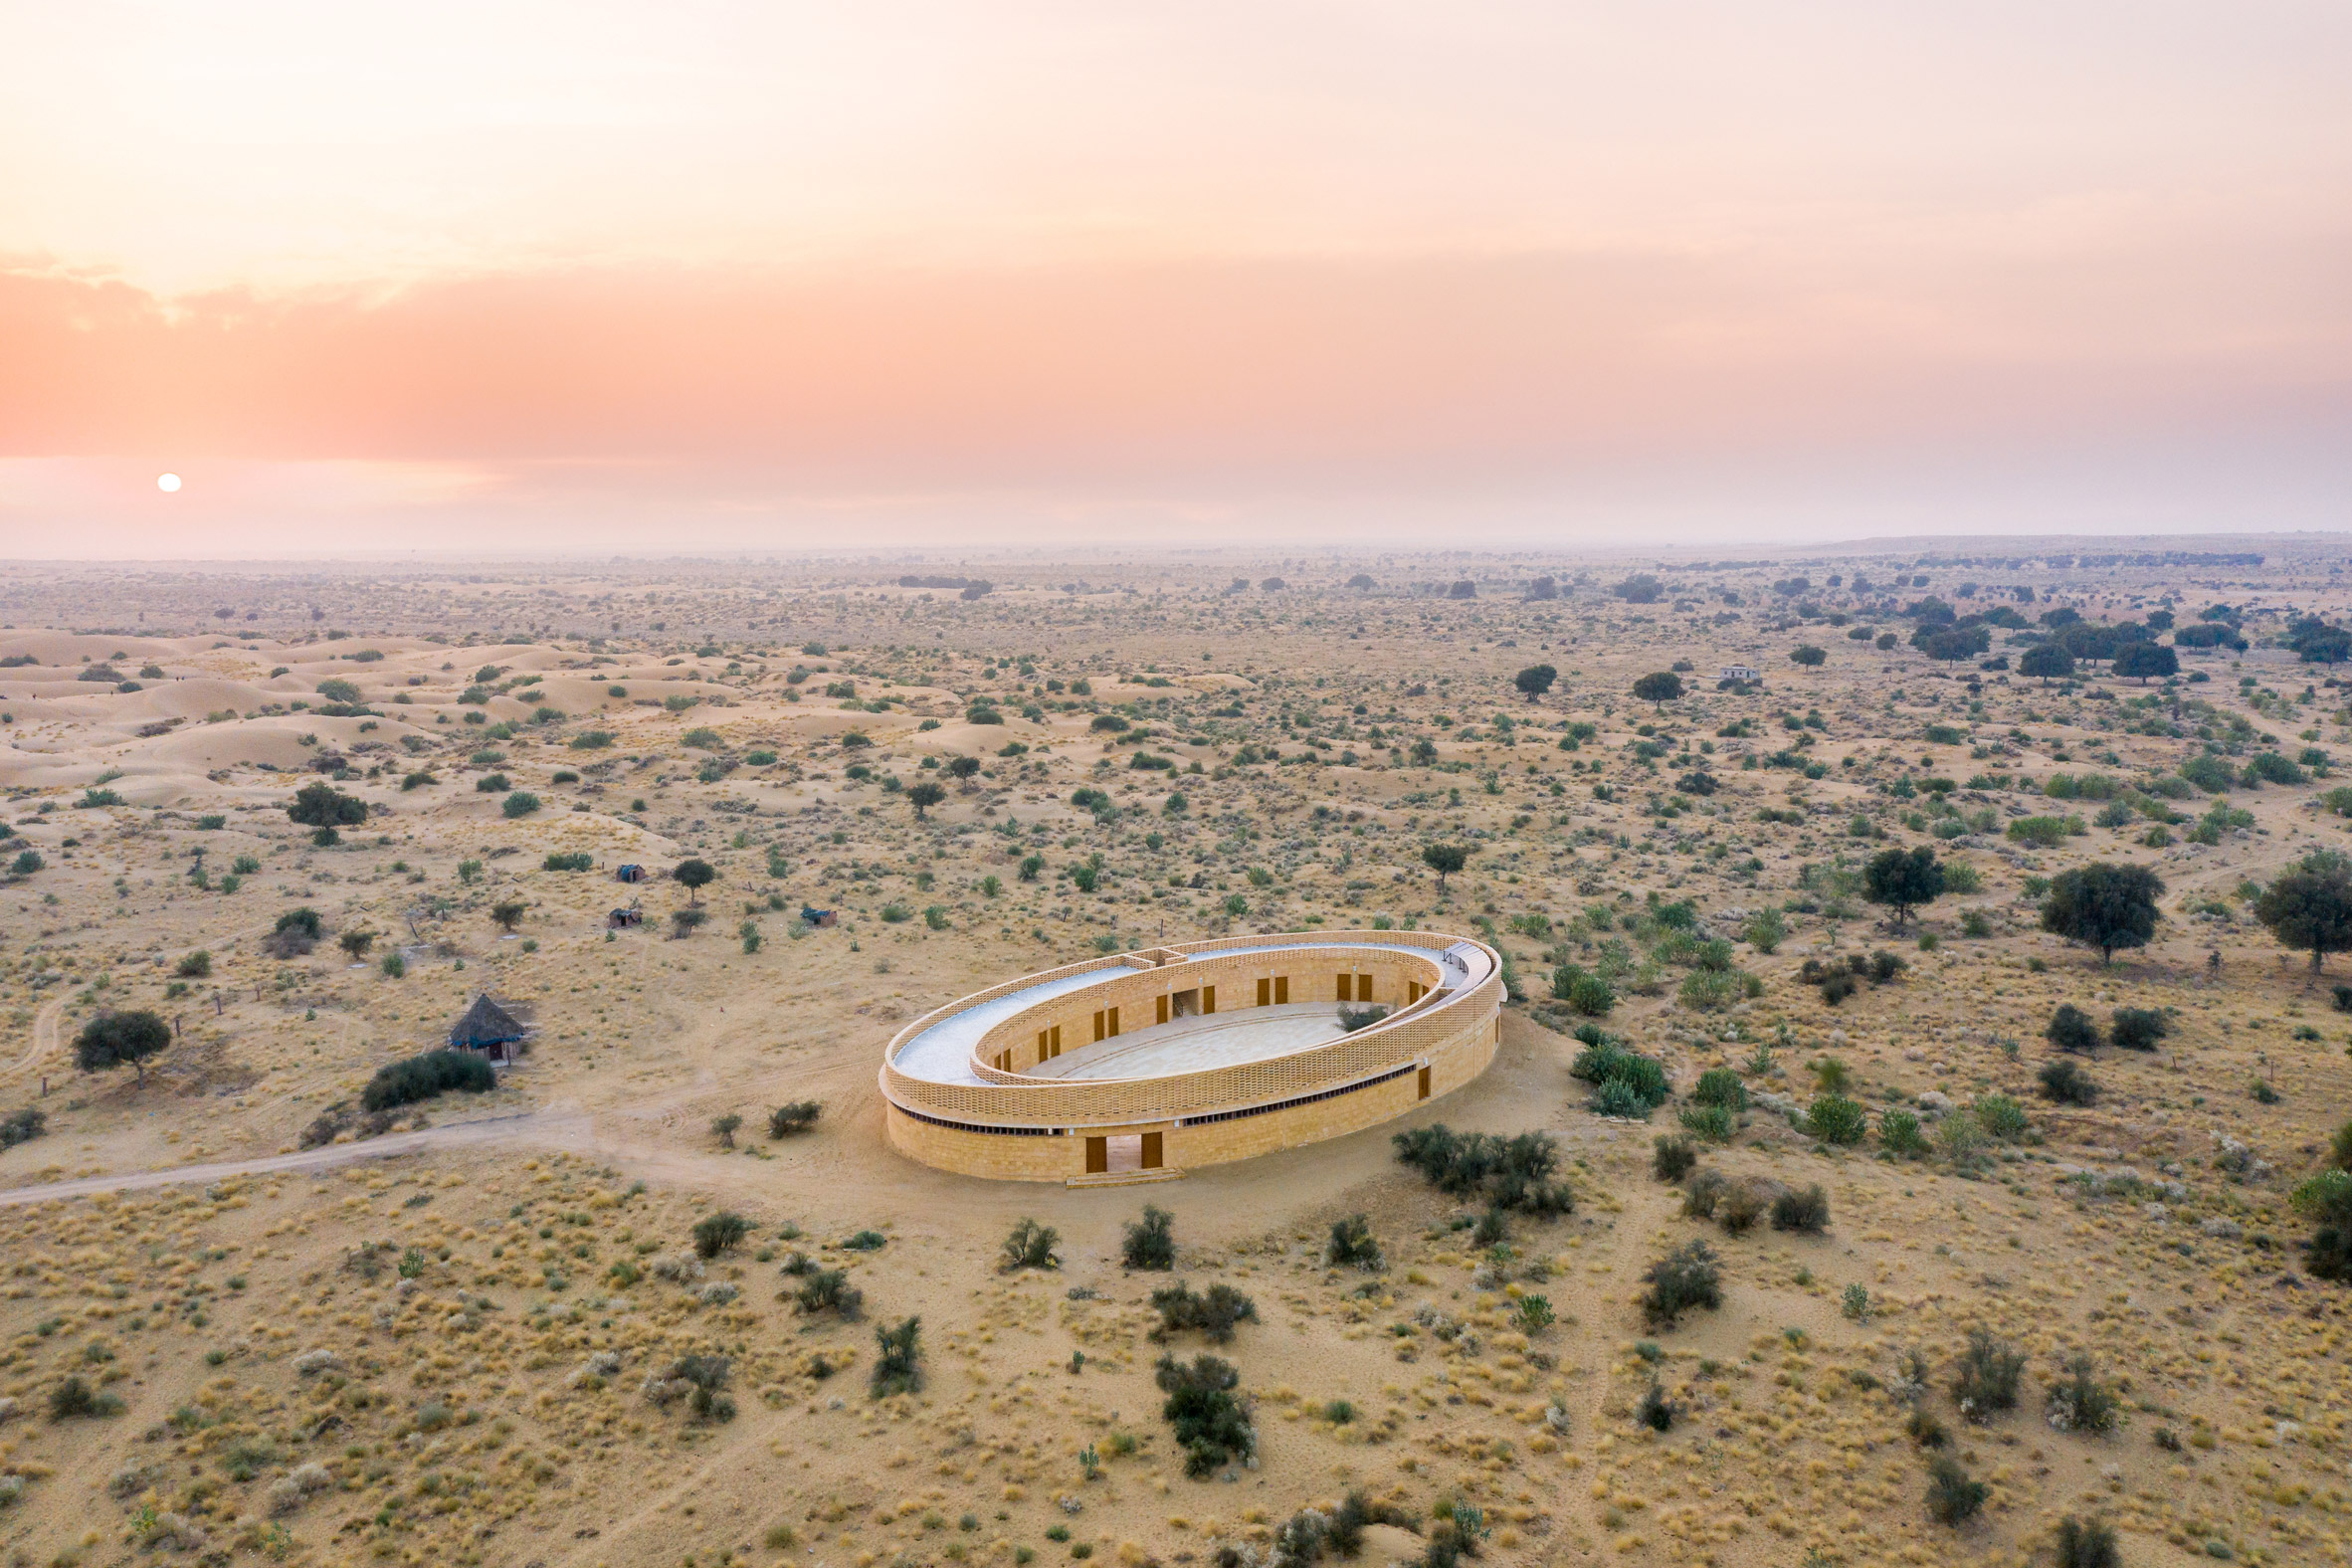 The school has an oval design by Diana Kellogg Architects